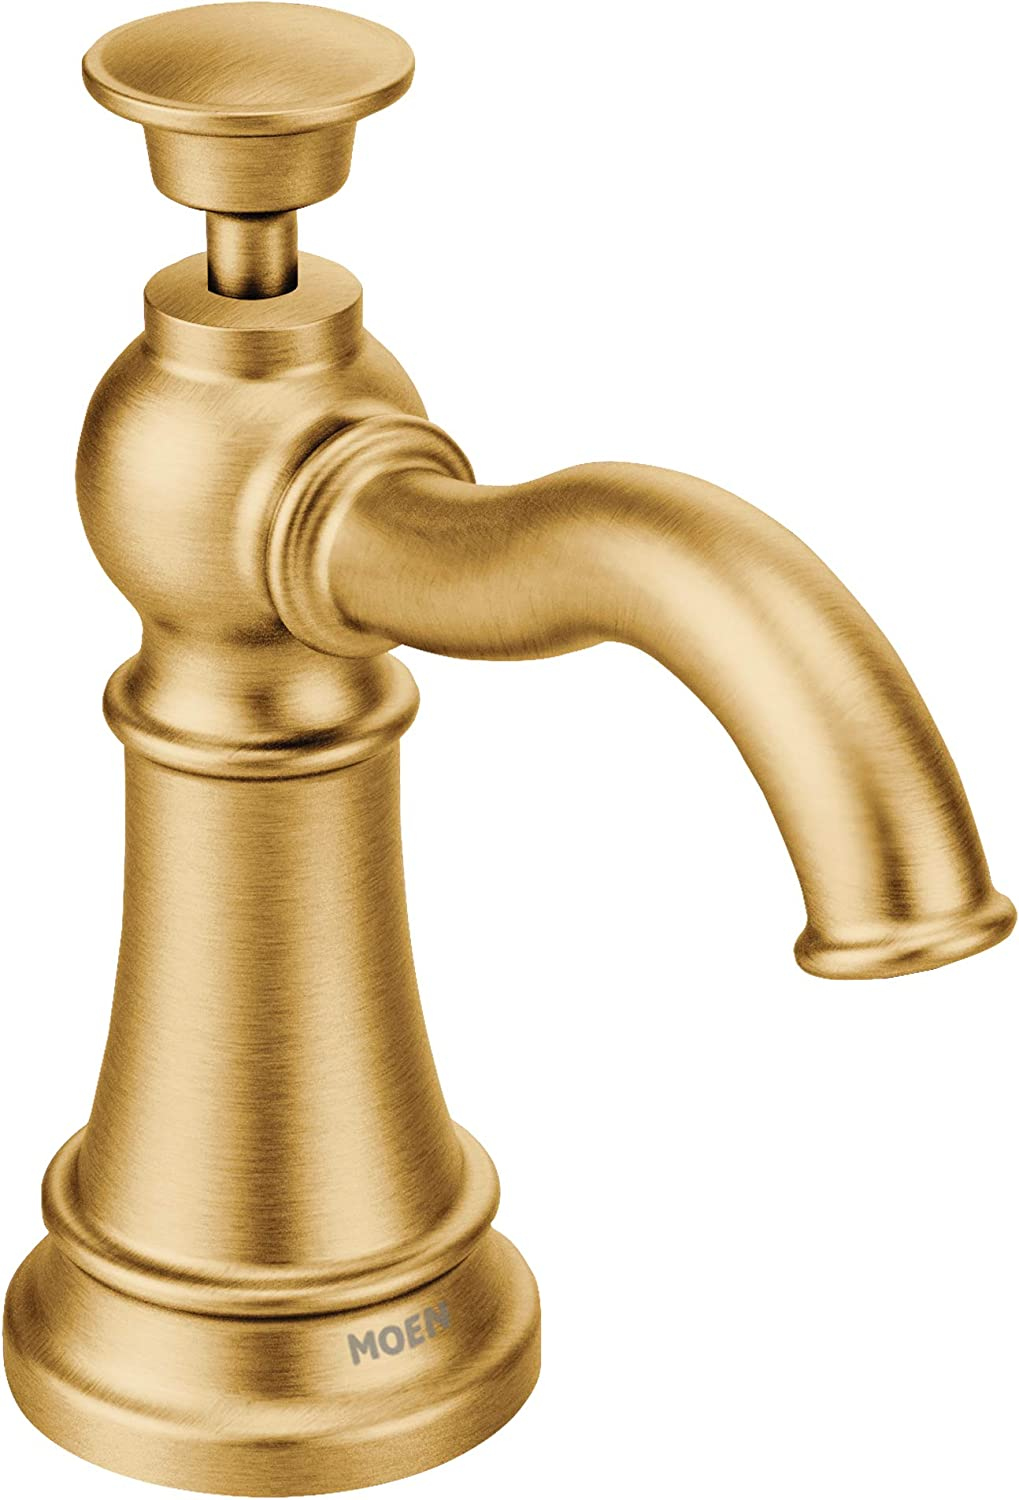 Moen S3945BG Traditional Deck Mounted Kitchen Soap Dispenser with Above the Sink Refillable Bottle, Brushed gold